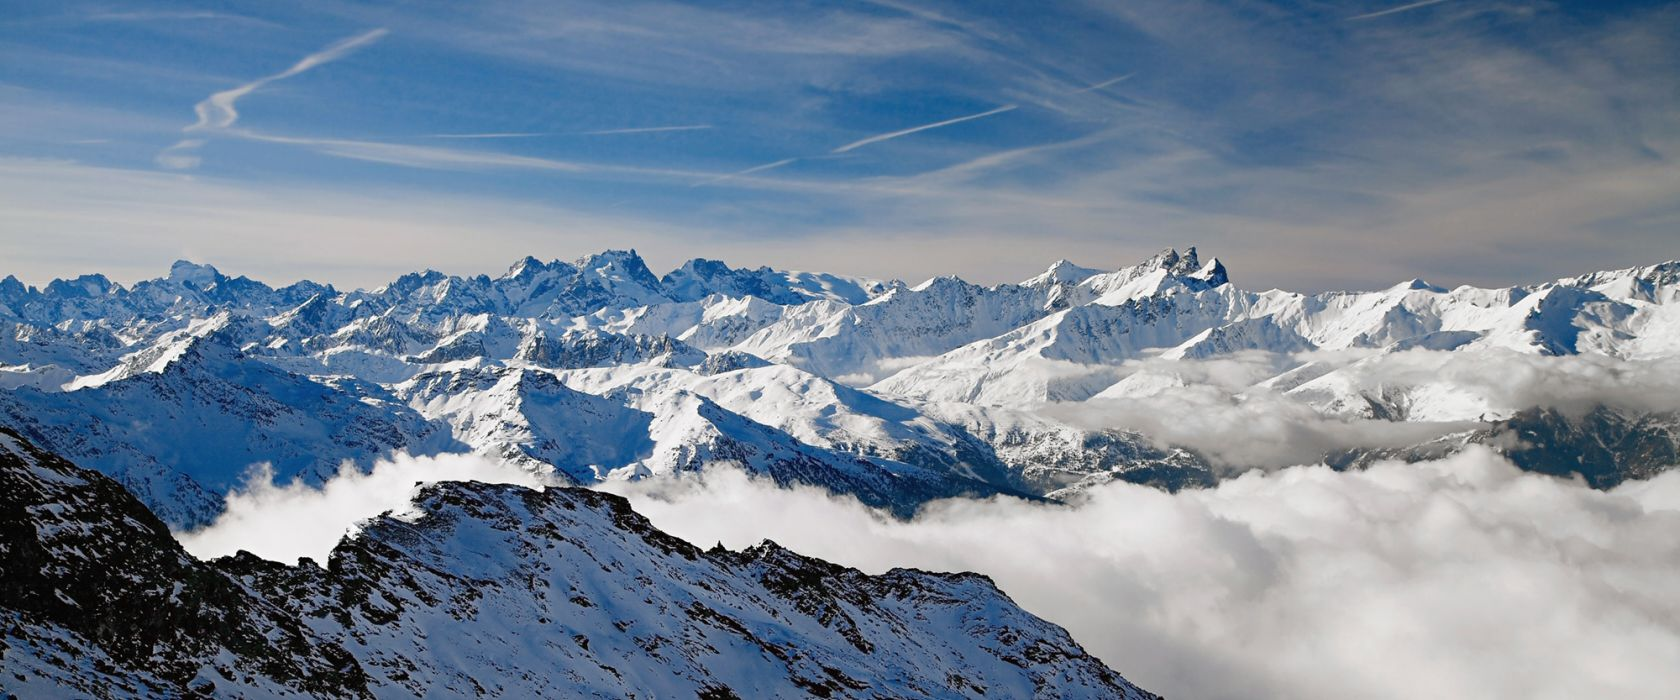 webcams des stations de ski france montagnes. Black Bedroom Furniture Sets. Home Design Ideas